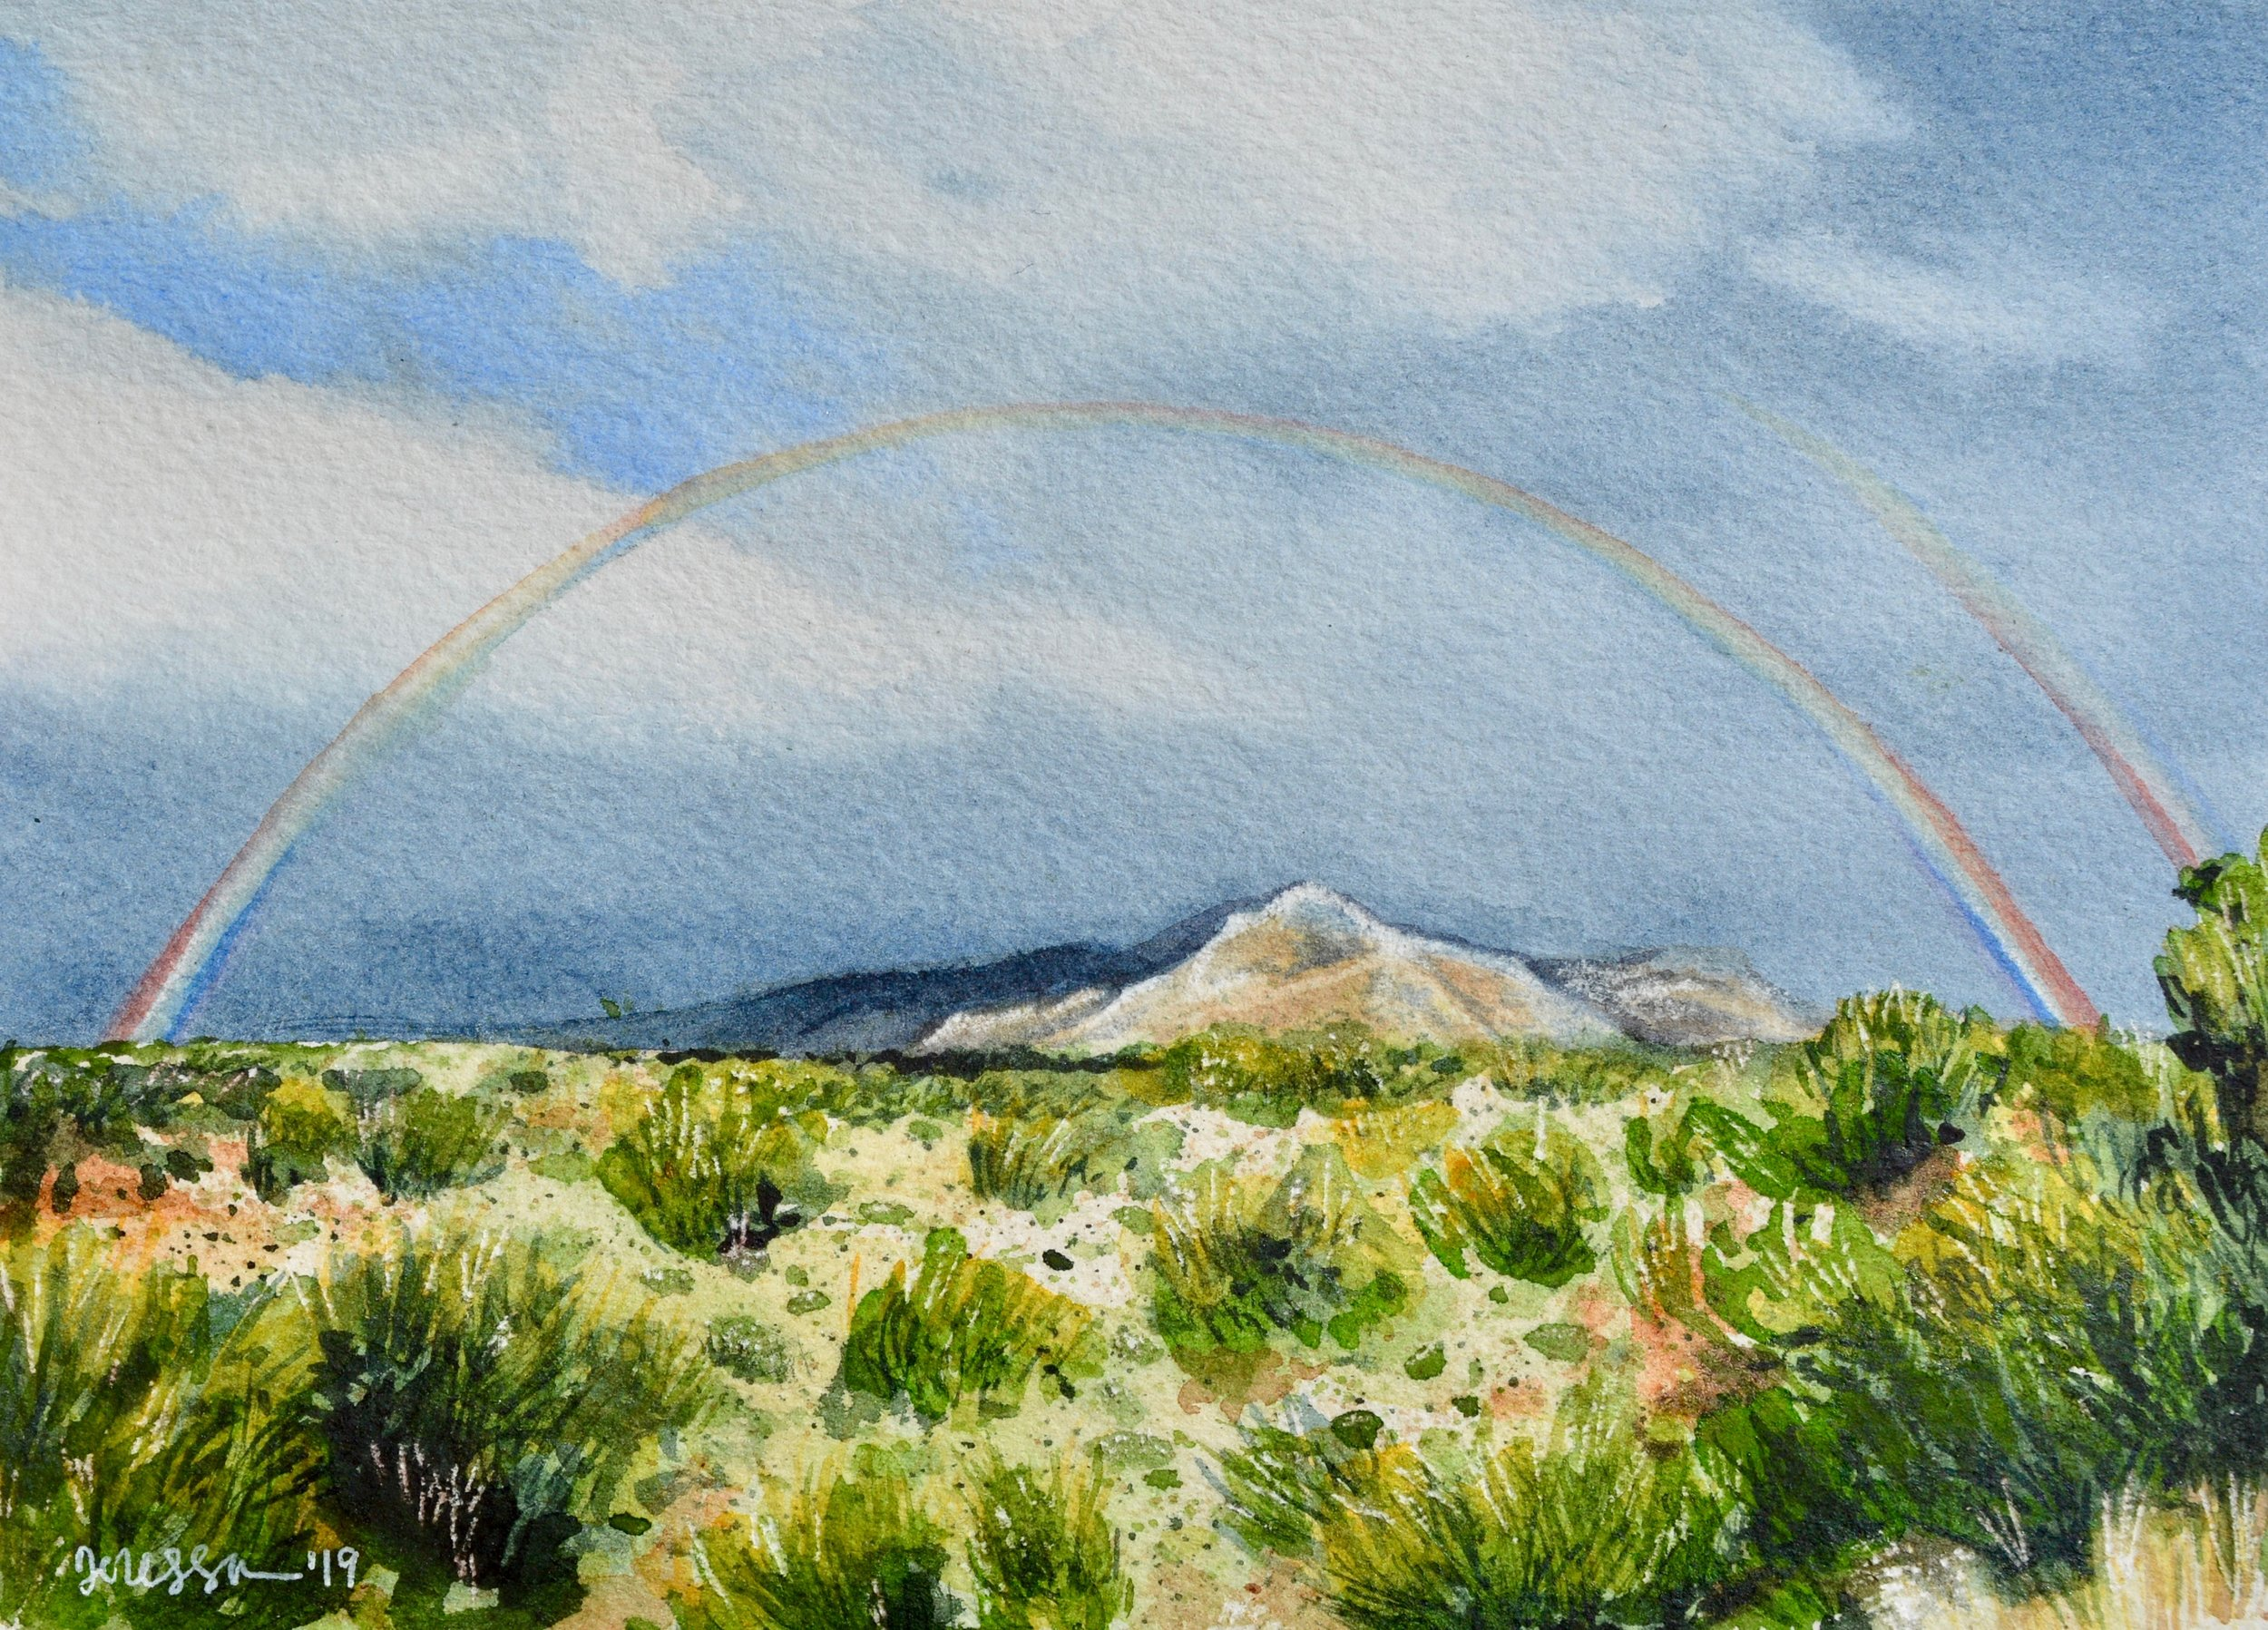 """Pusch Ridge Rainbow"" SOLD (Commission) 7x5"" on watercolor paper"